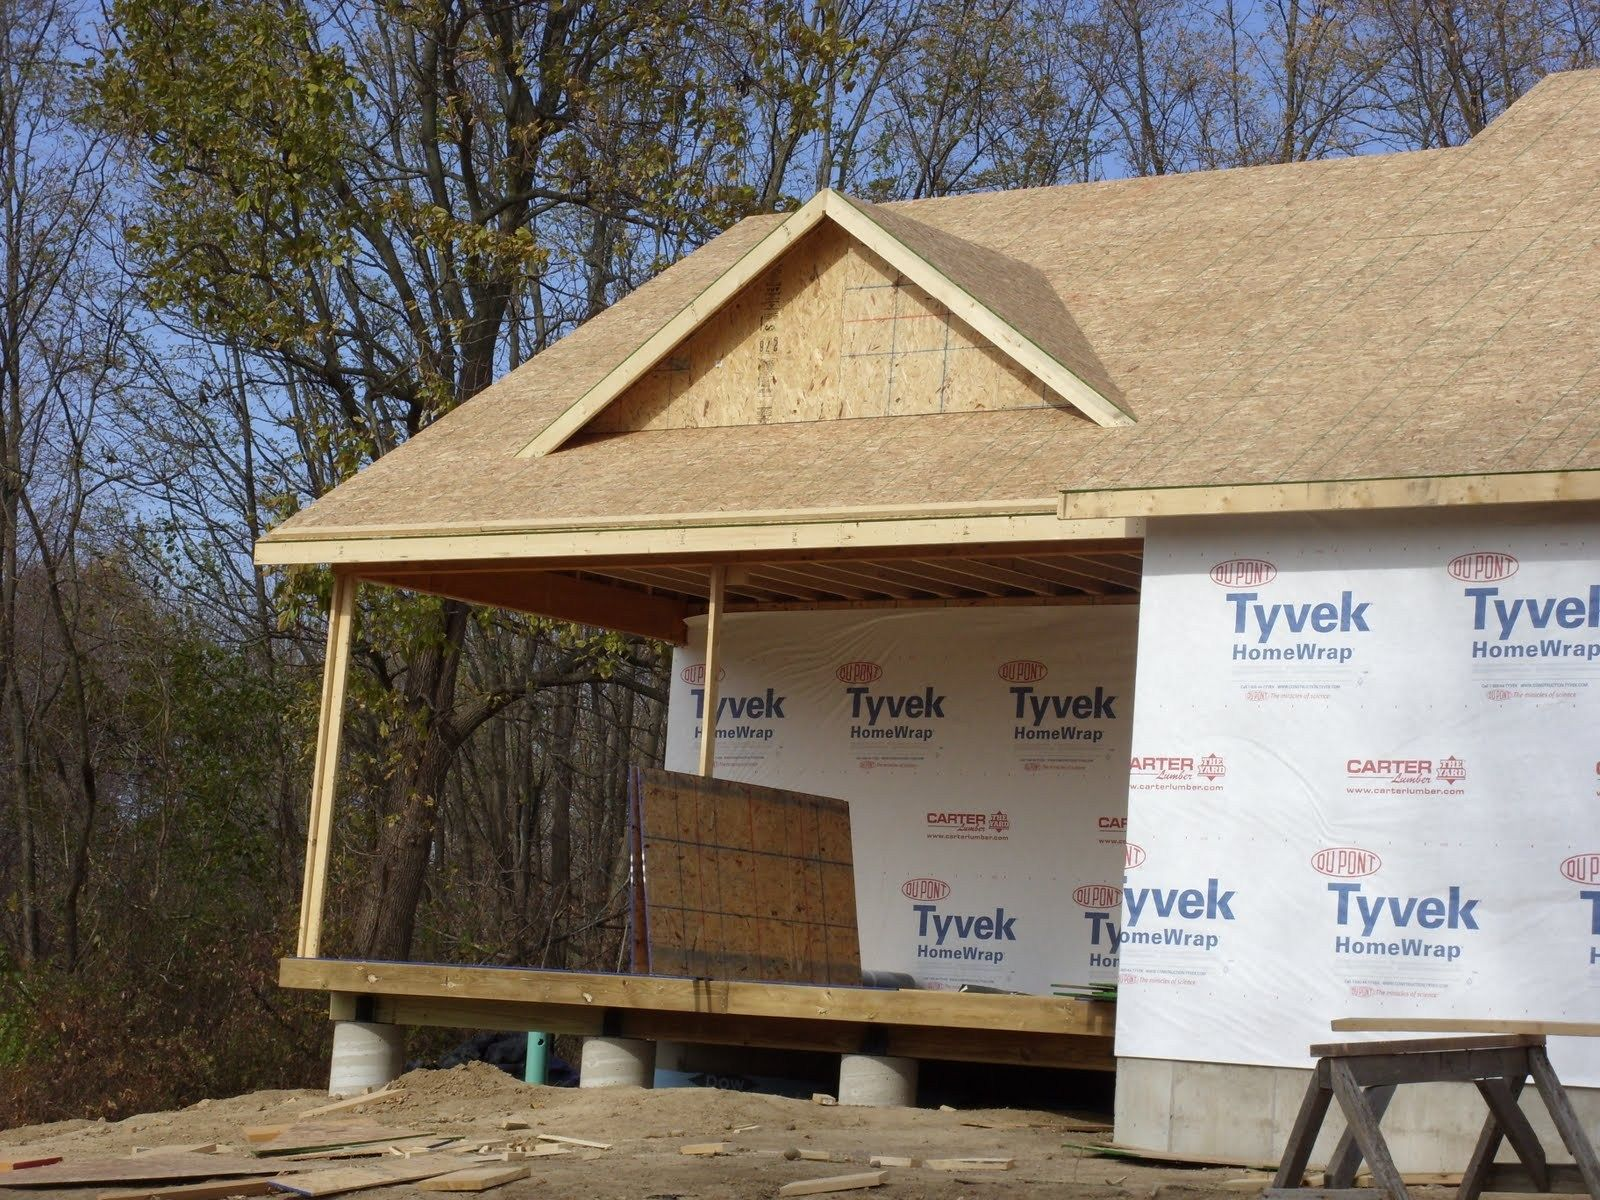 Top 10 Roof Dormer Types Plus Costs And Pros Cons In 2020 Dormers Roof Coating Shed Plans